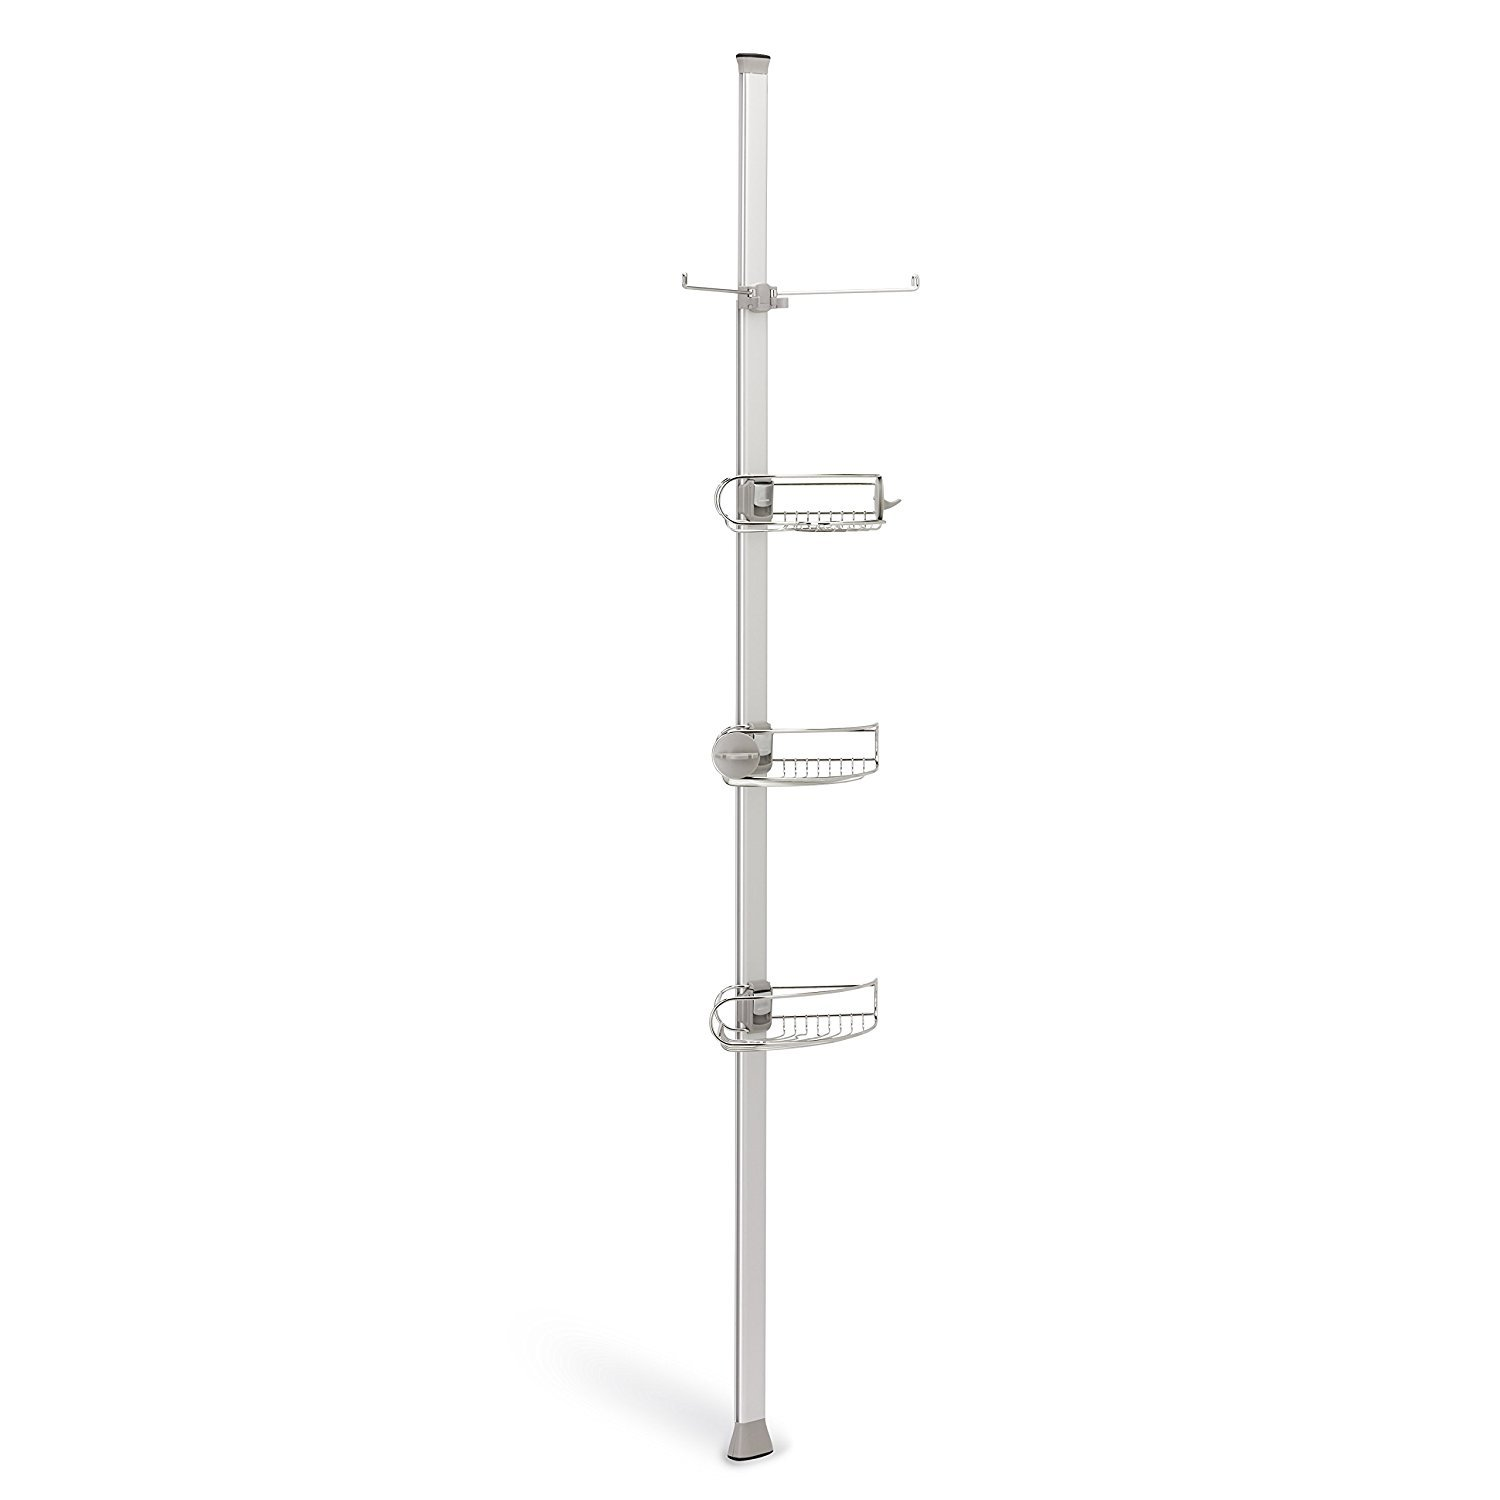 Tier basket shower caddy mild steel rust free stick n lock bathroom - Amazon Com Simplehuman Tension Shower Caddy Adjustable Tension Pole Stainless Steel And Anodized Aluminum Home Kitchen